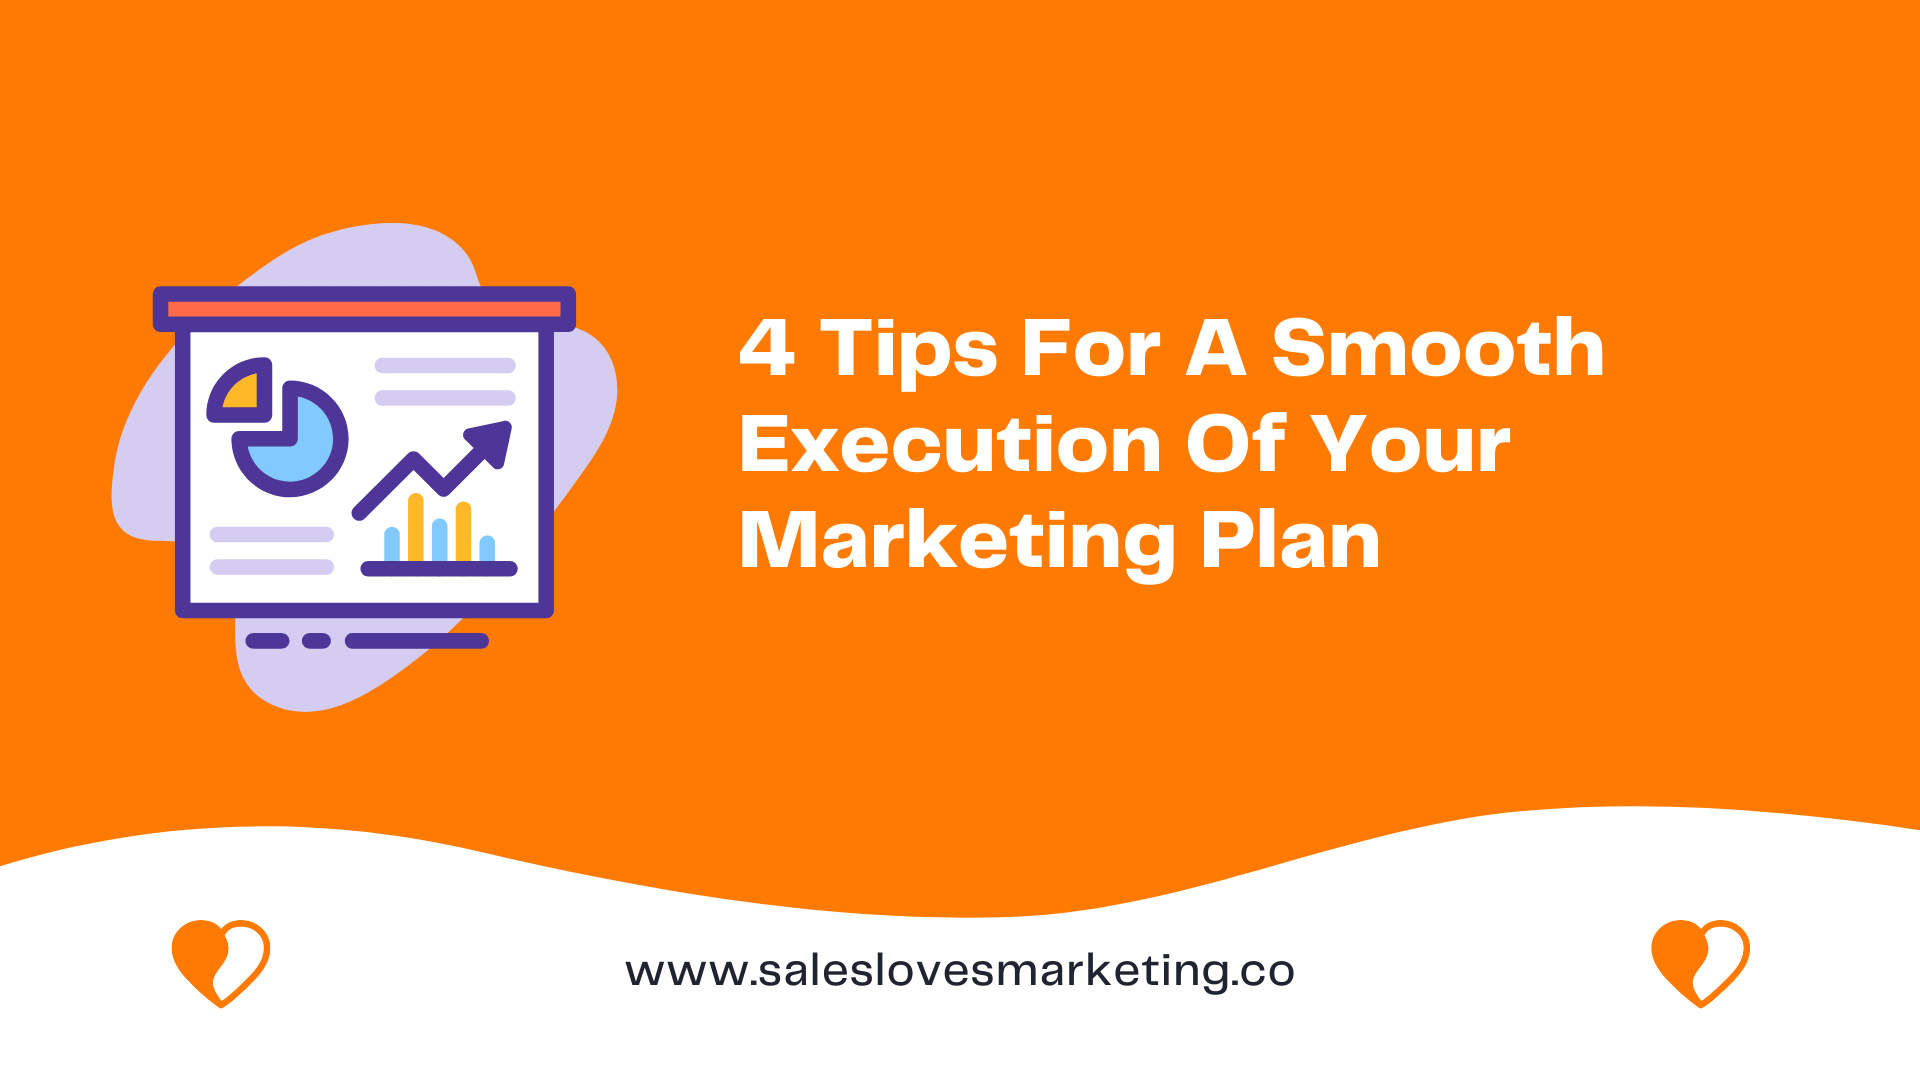 Tips on making sure the execution of your marketing plan goes as smooth as possible.